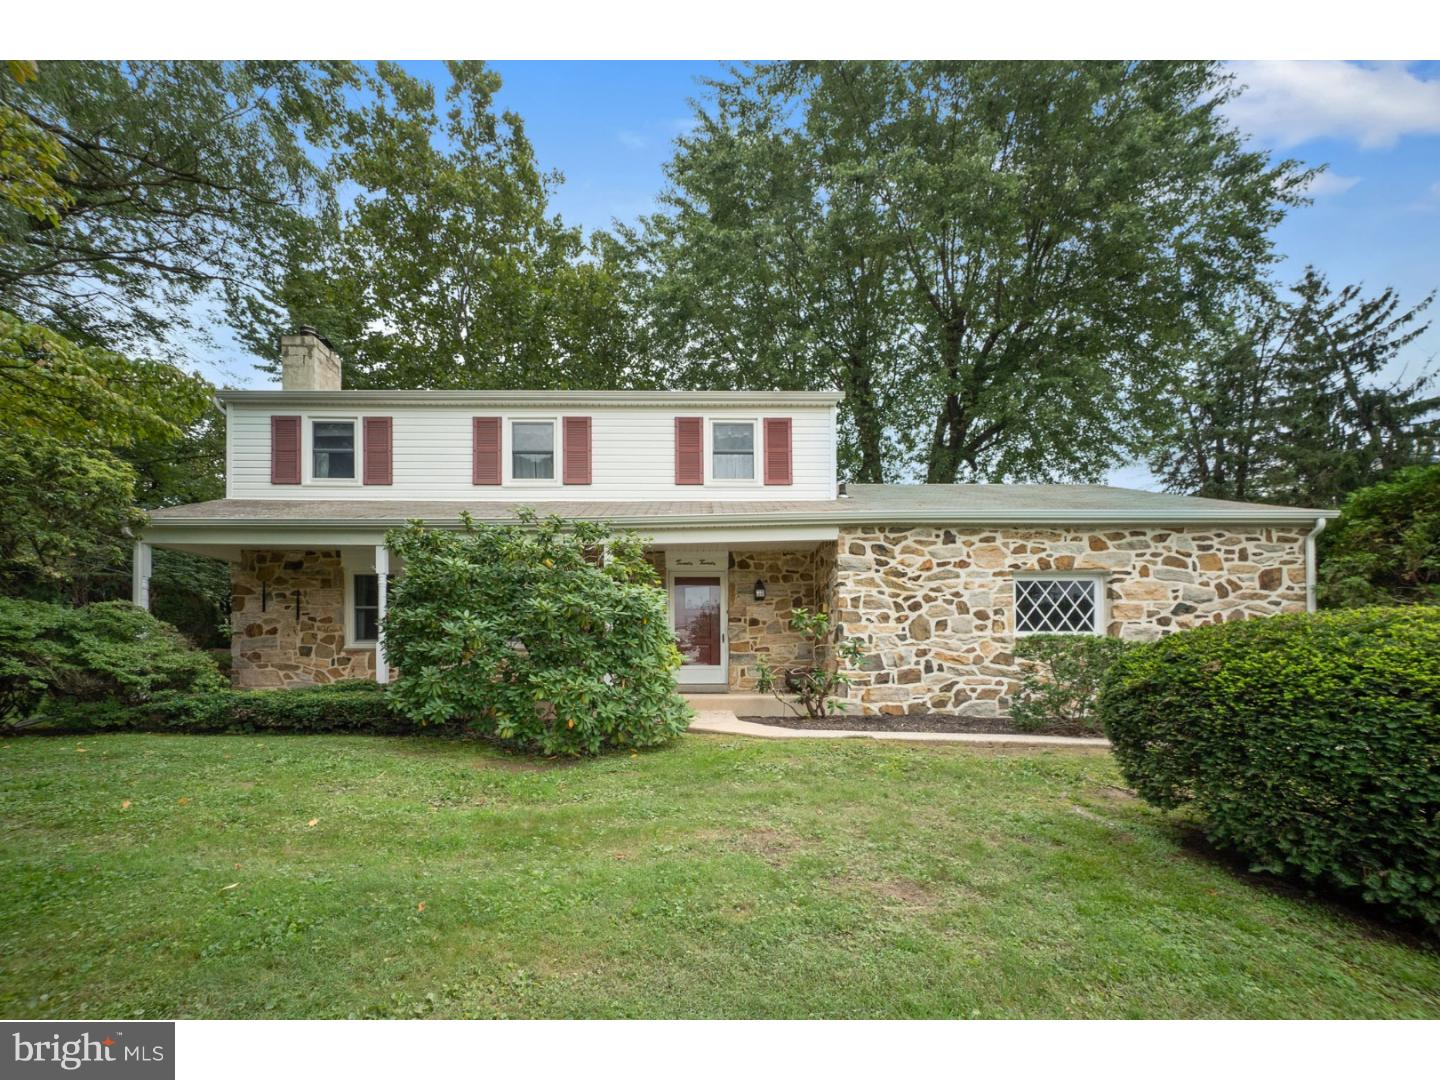 2020 S Parkway Street Broomall, PA 19008